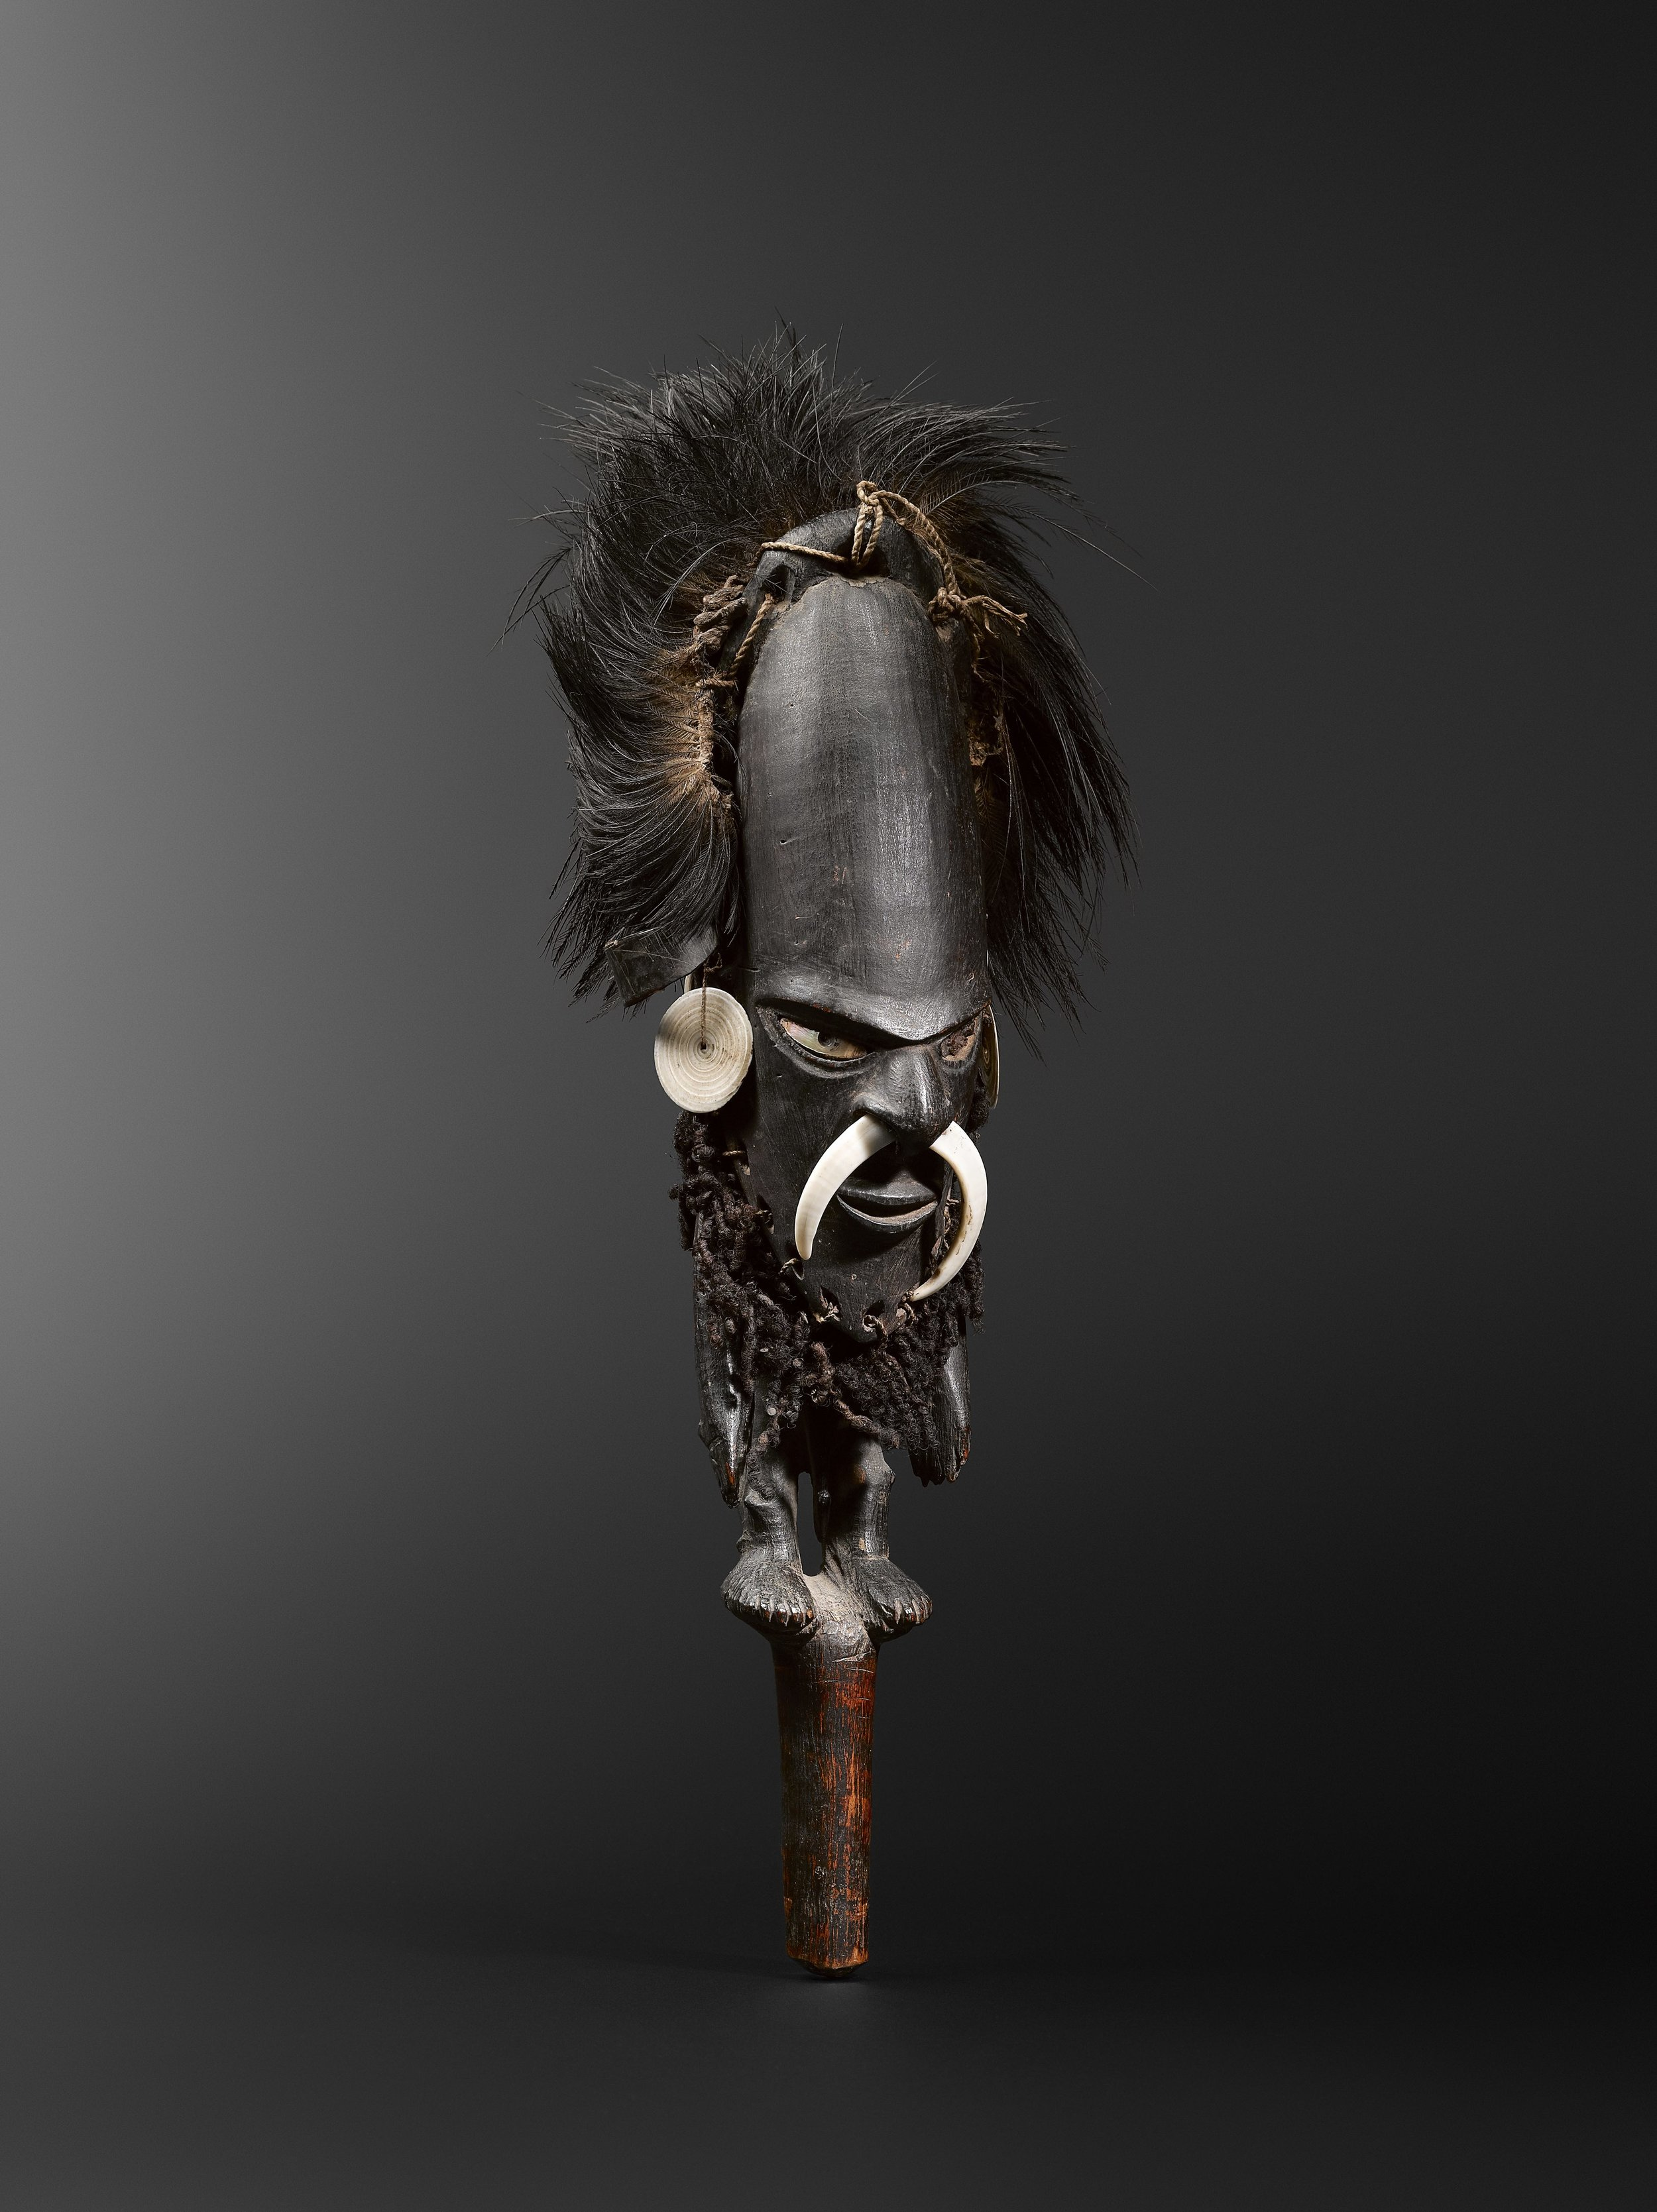 Flute stopper,  wusear.  Mundugumor / Biwat. Yuat River. Wood, cassowary feathers, fibre, boars' tusks, turtle shell, Conus and mother-of-pearl shells, human hair and pigments. 50 cm. Bisseling Collection, The Hague. Jef Vanderstraete, Lasne, Belgium. © Hugues Dubois, Brussels/Paris